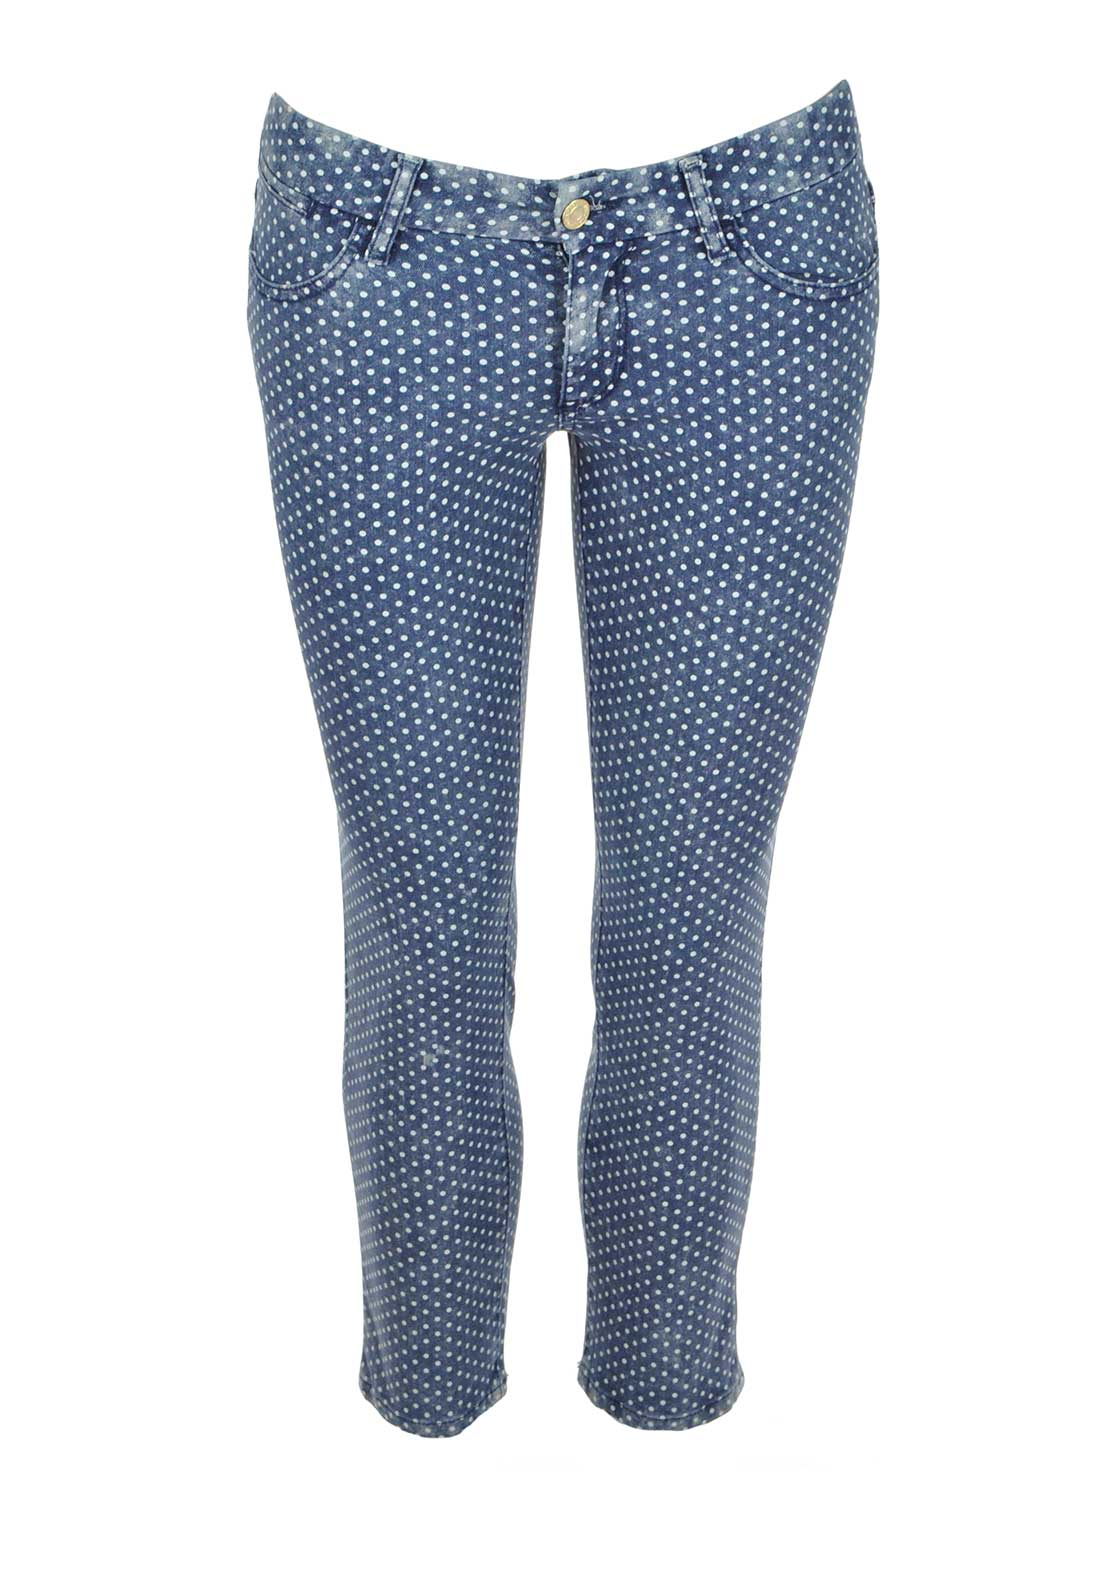 Guess Womens Polka Dot Skinny Cropped Jeans, Blue